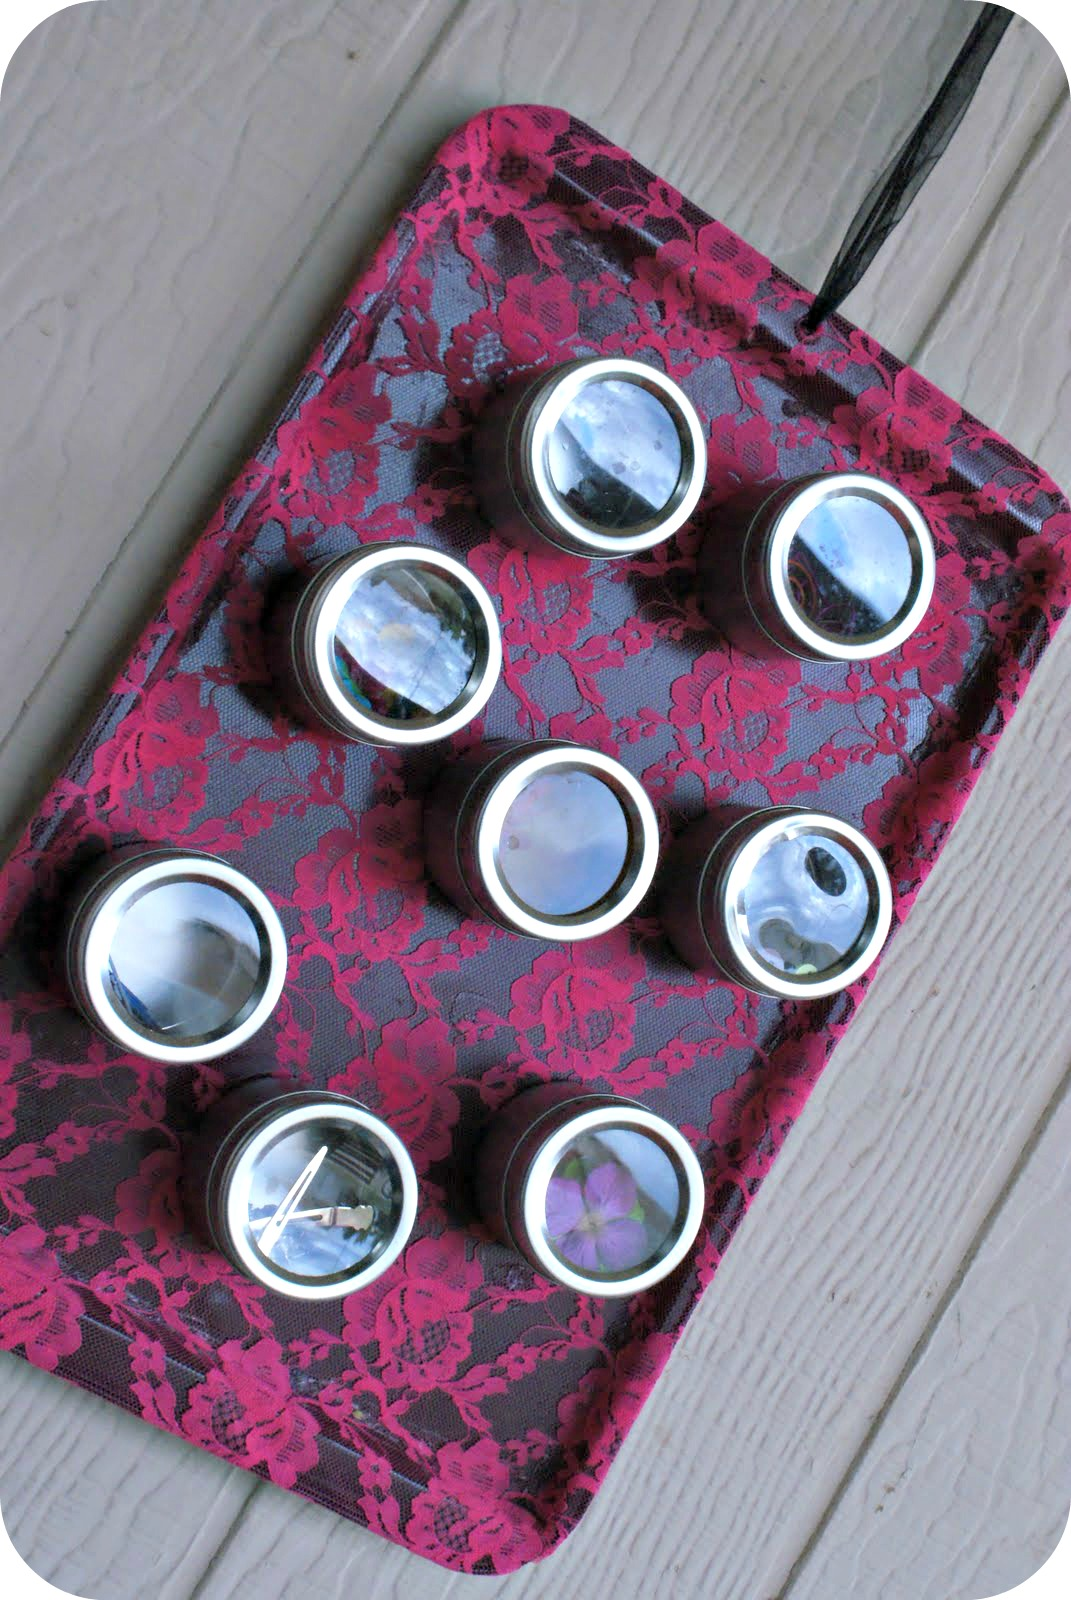 thrifty thursday  upcycled cookie sheet turned craft